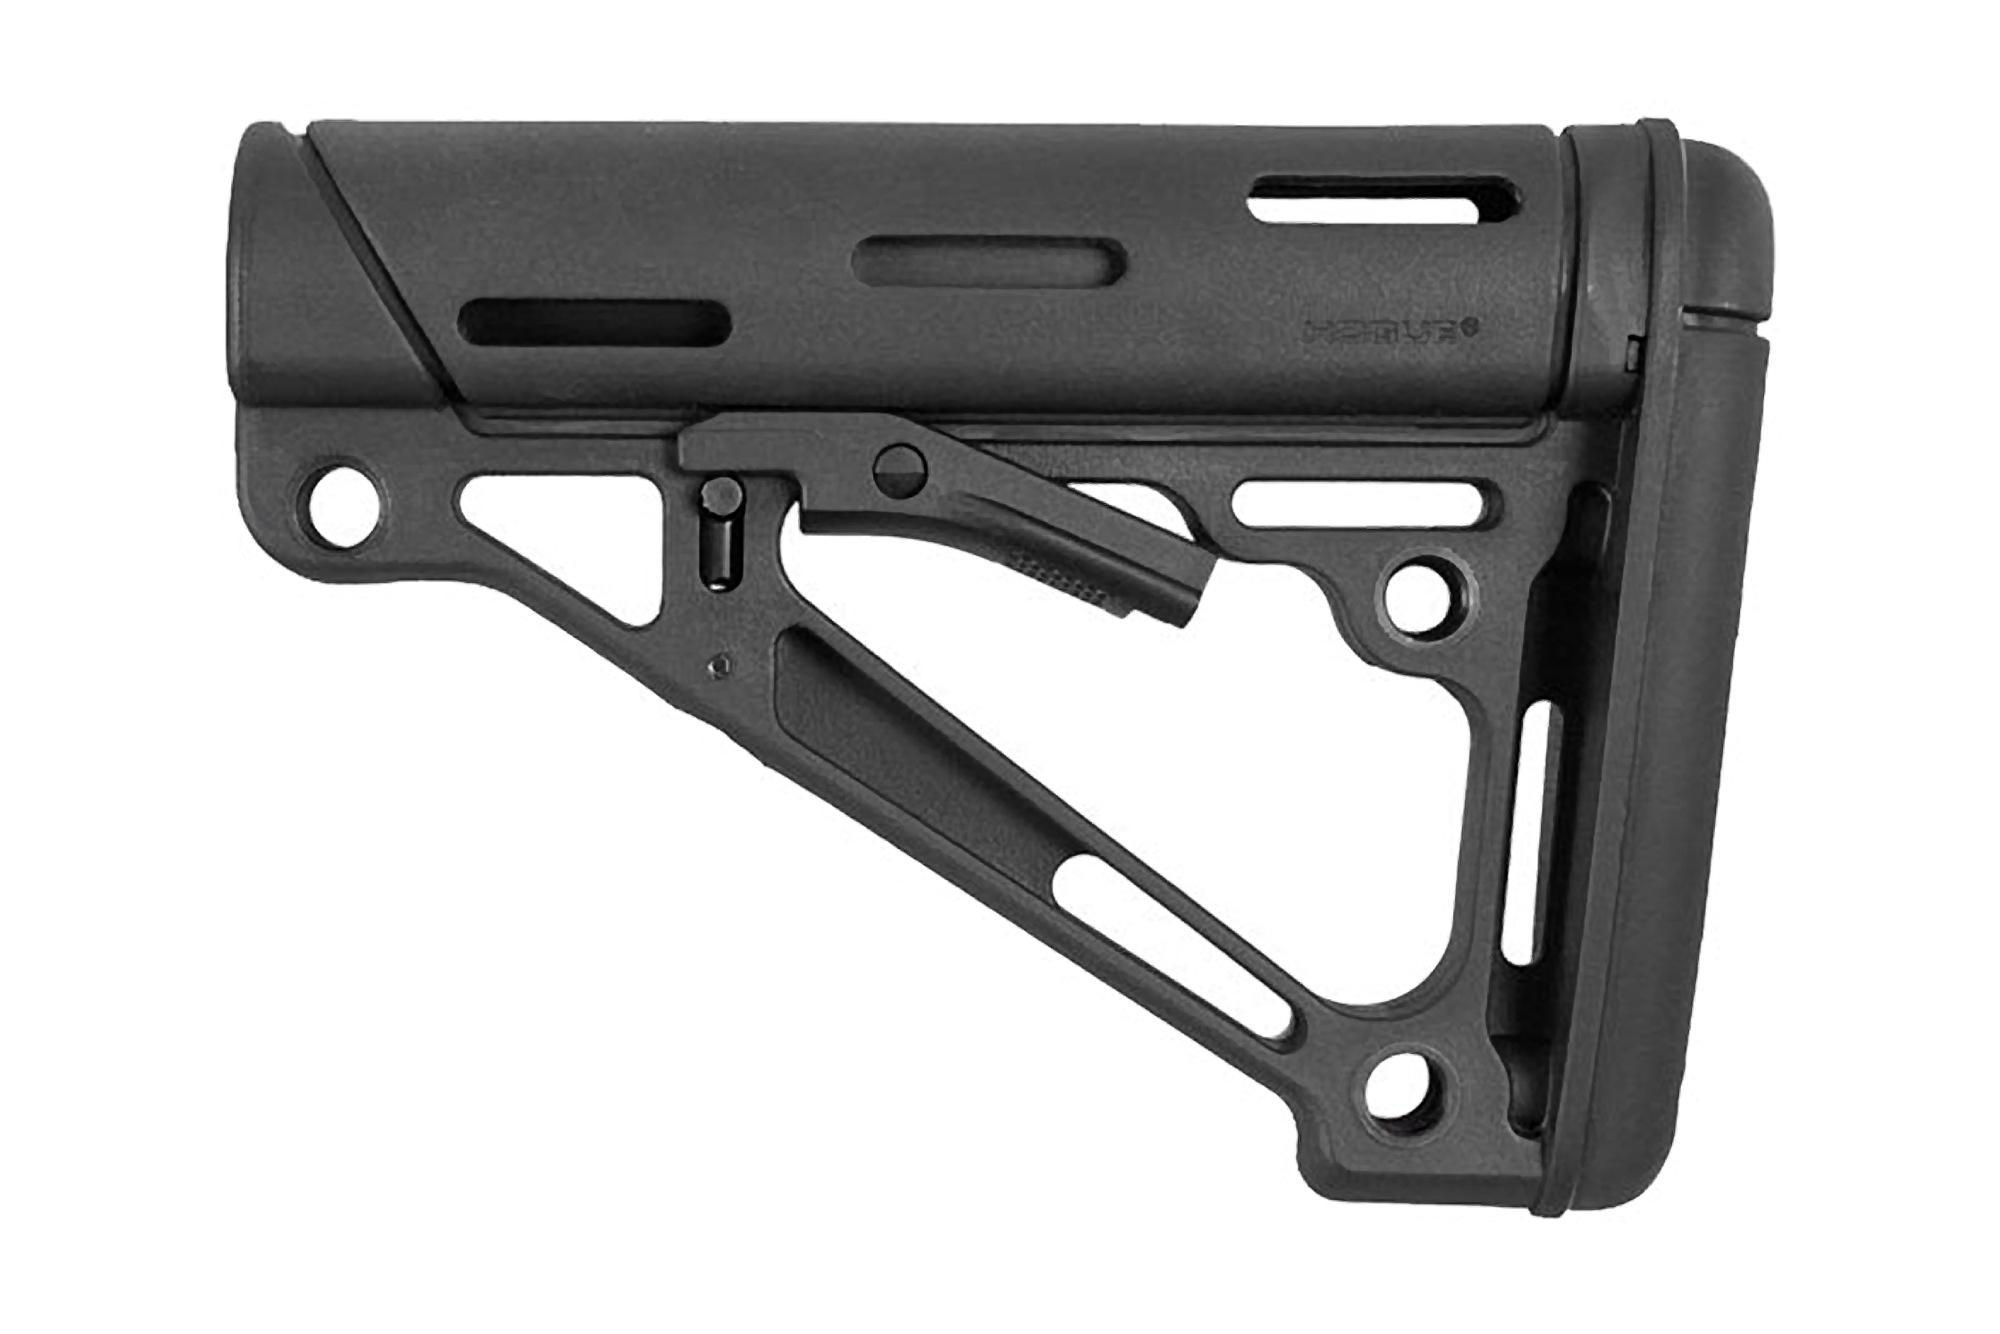 Hogue Mil-Spec OverMolded Collapsible Buttstock - Black